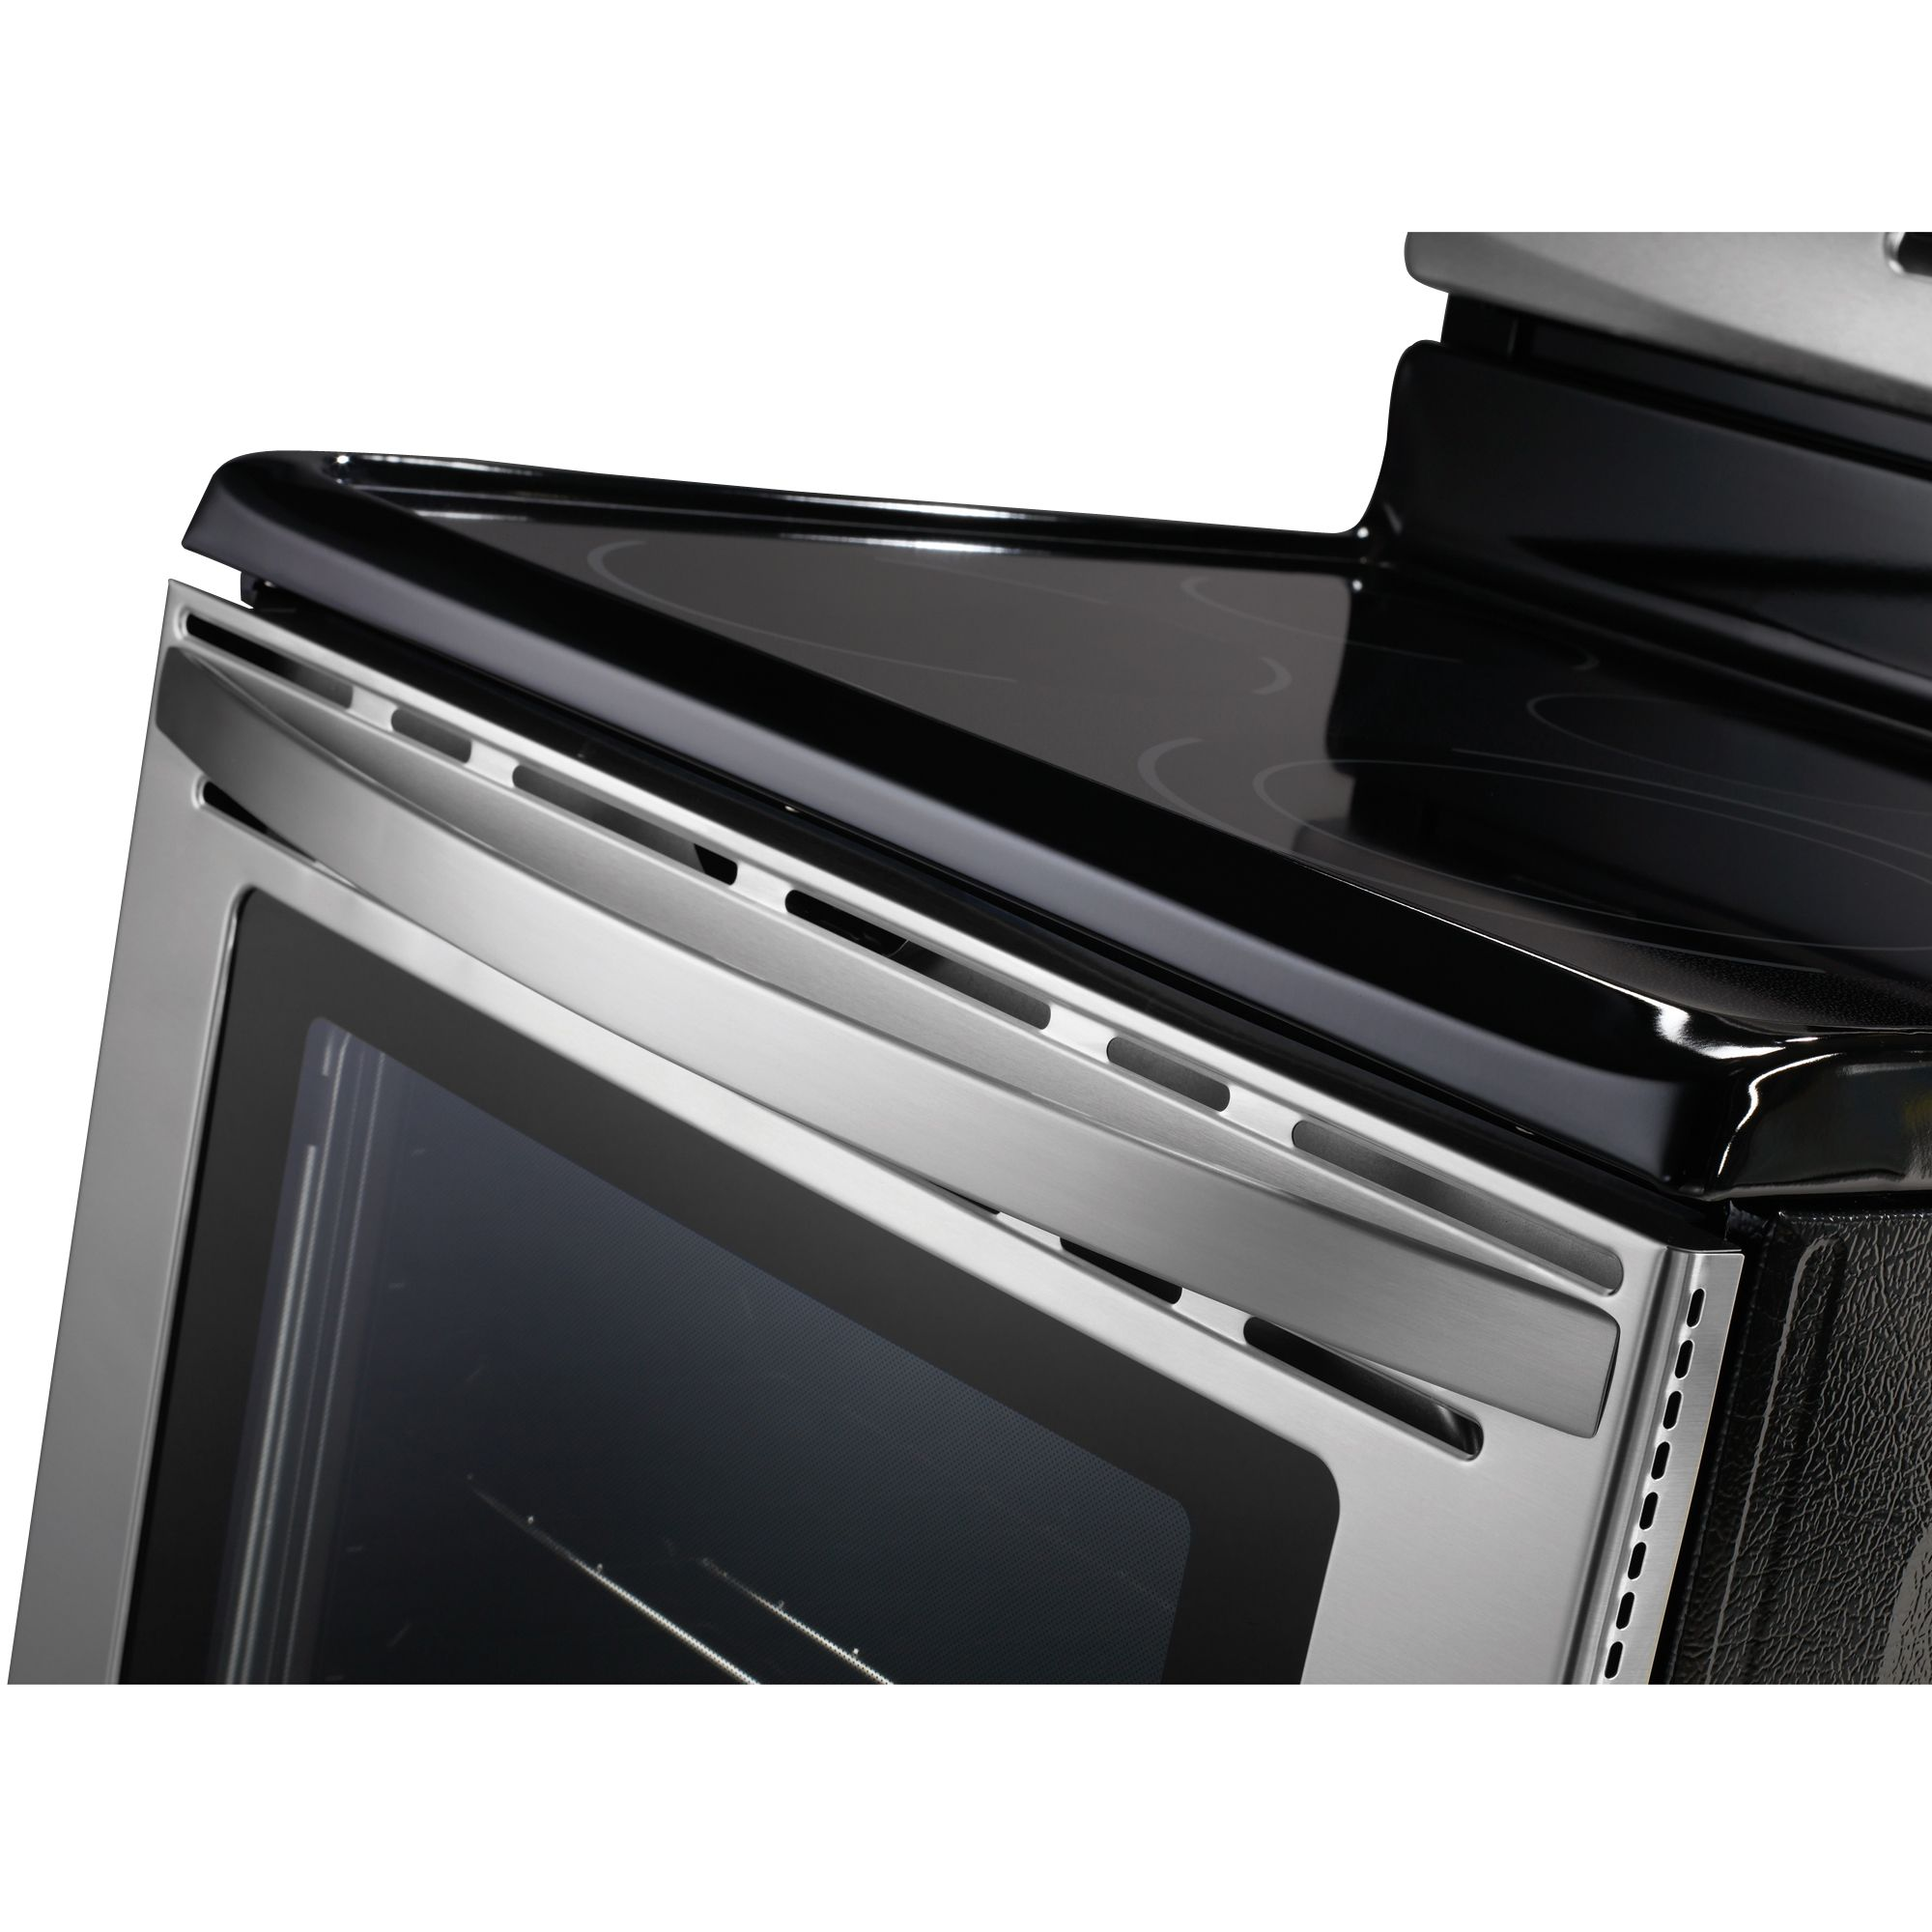 Kenmore 5.4 cu. ft. Electric Range - Bisque